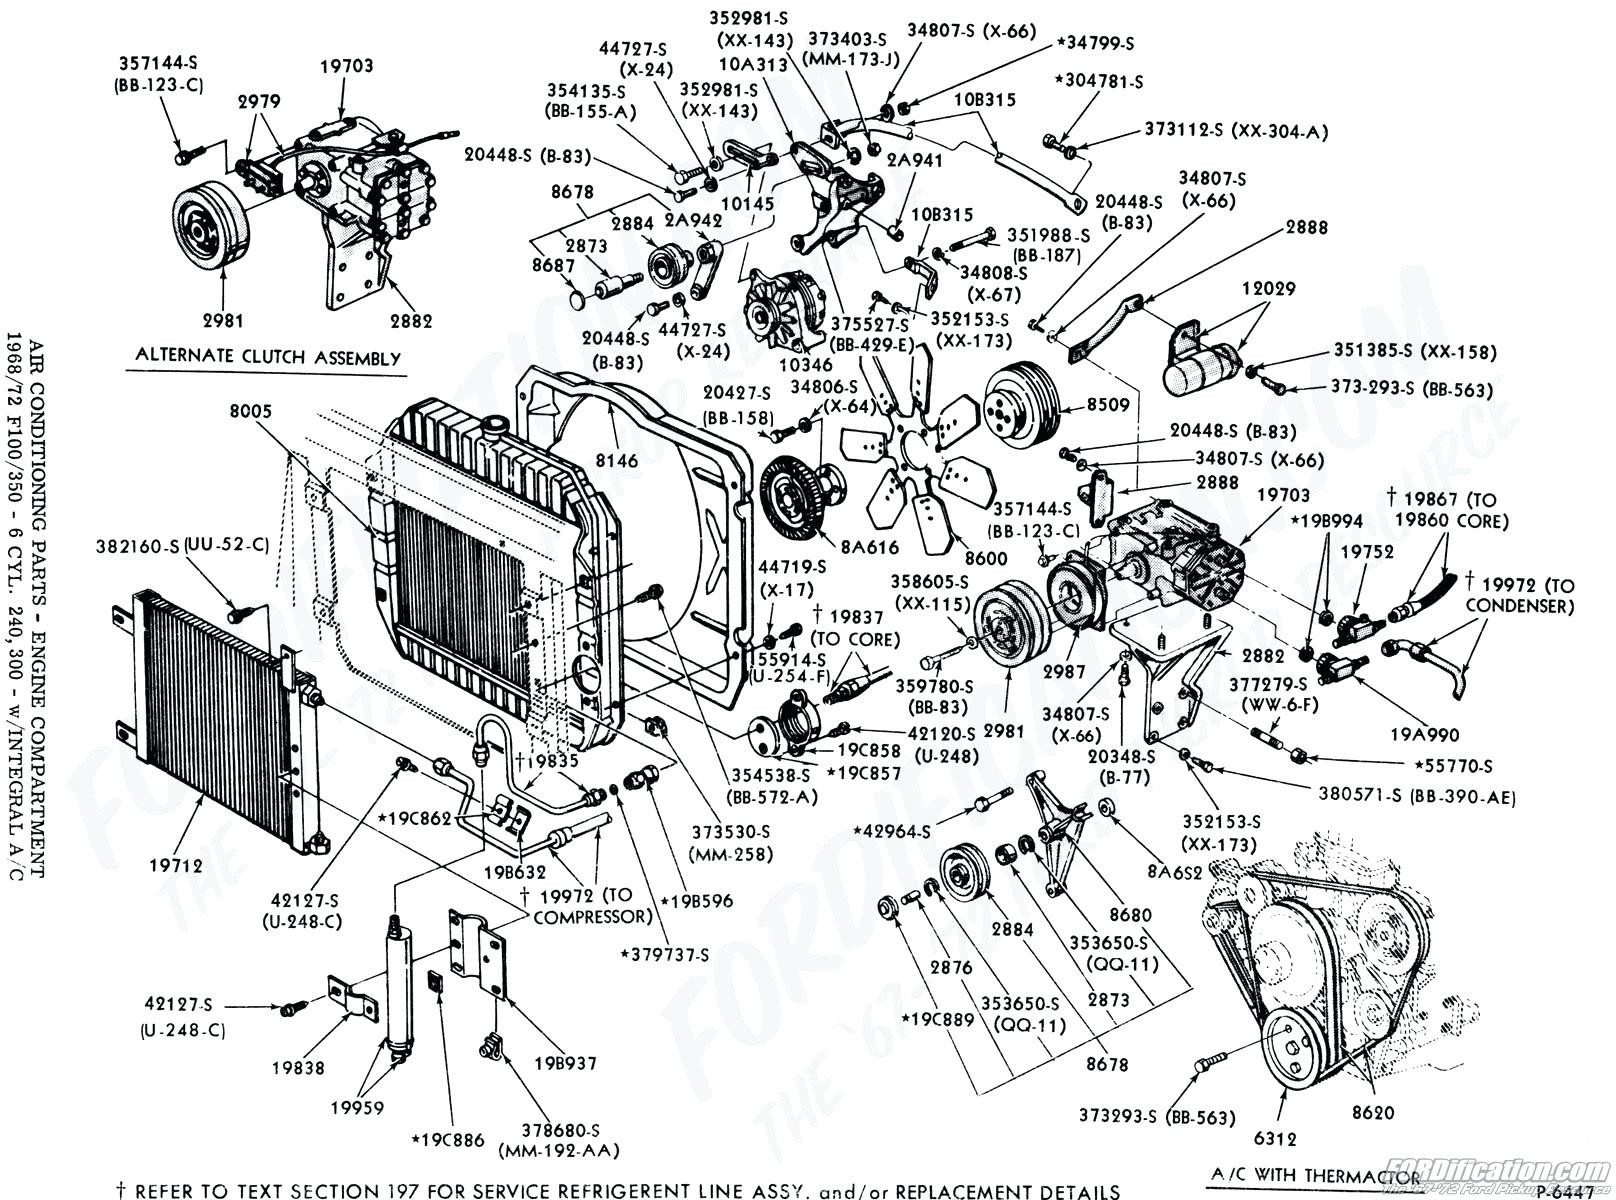 Ford 302 Engine Diagram Full Hd Version Engine